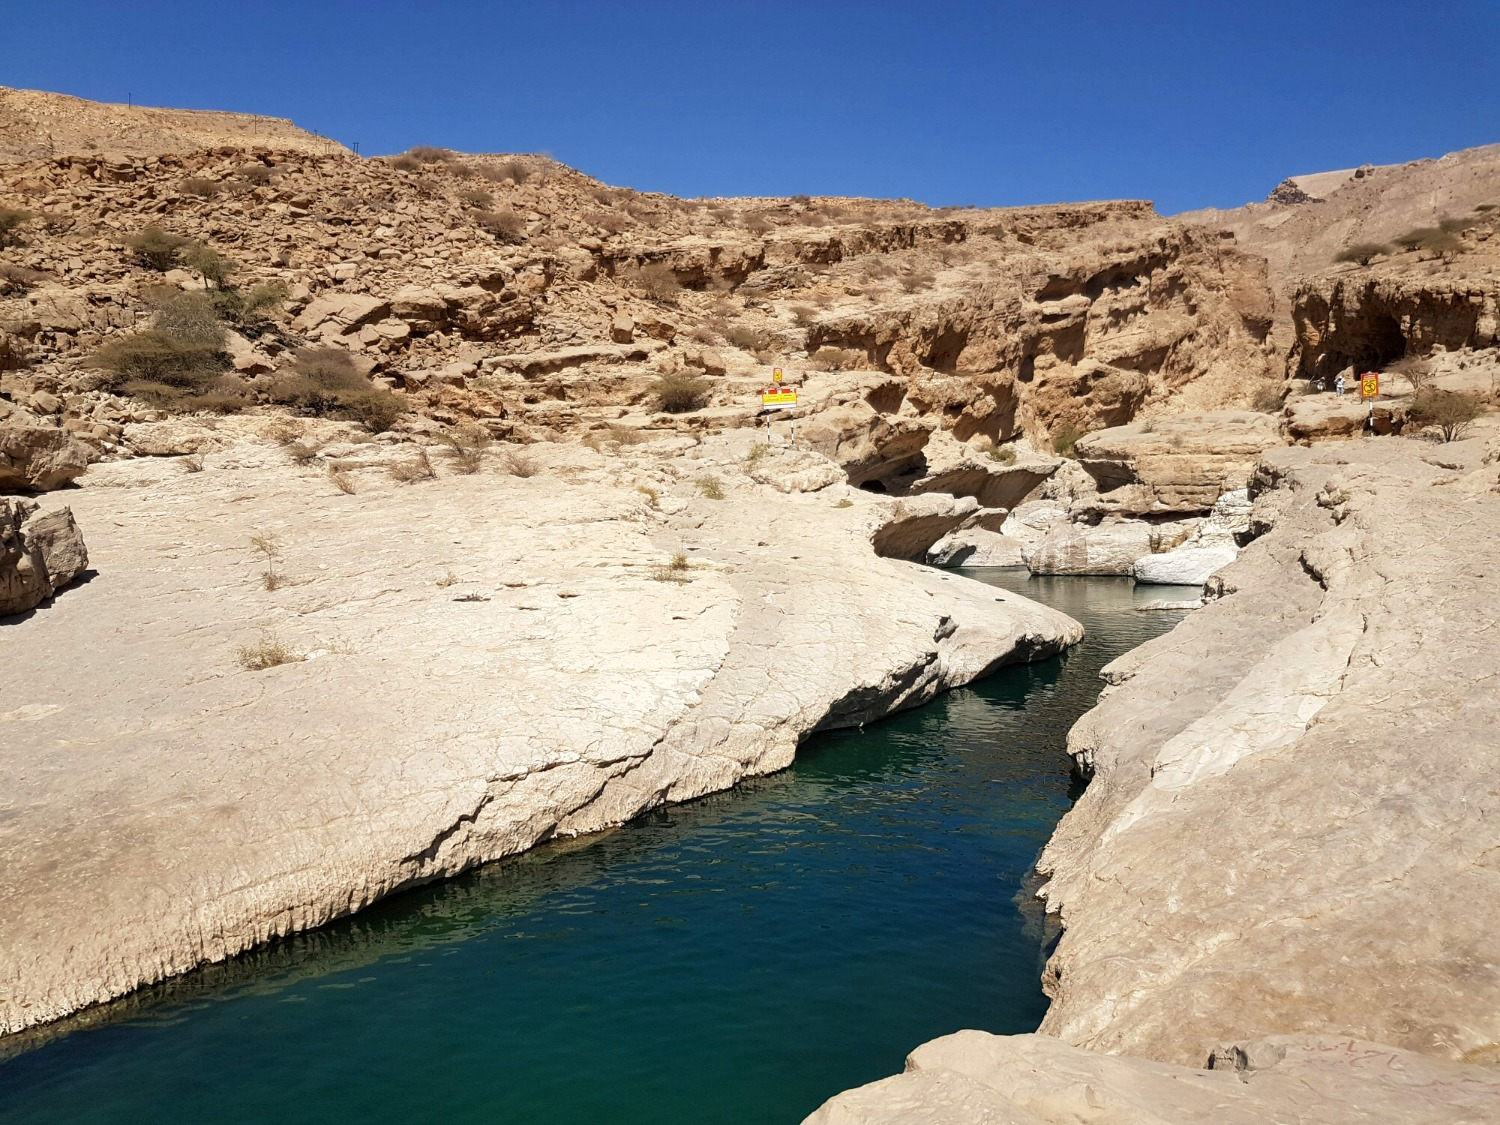 The waters of Wadi Bani Khalid curving through the rock of the Hajar Mountains in Oman - my nine reasons to visit Oman with kids